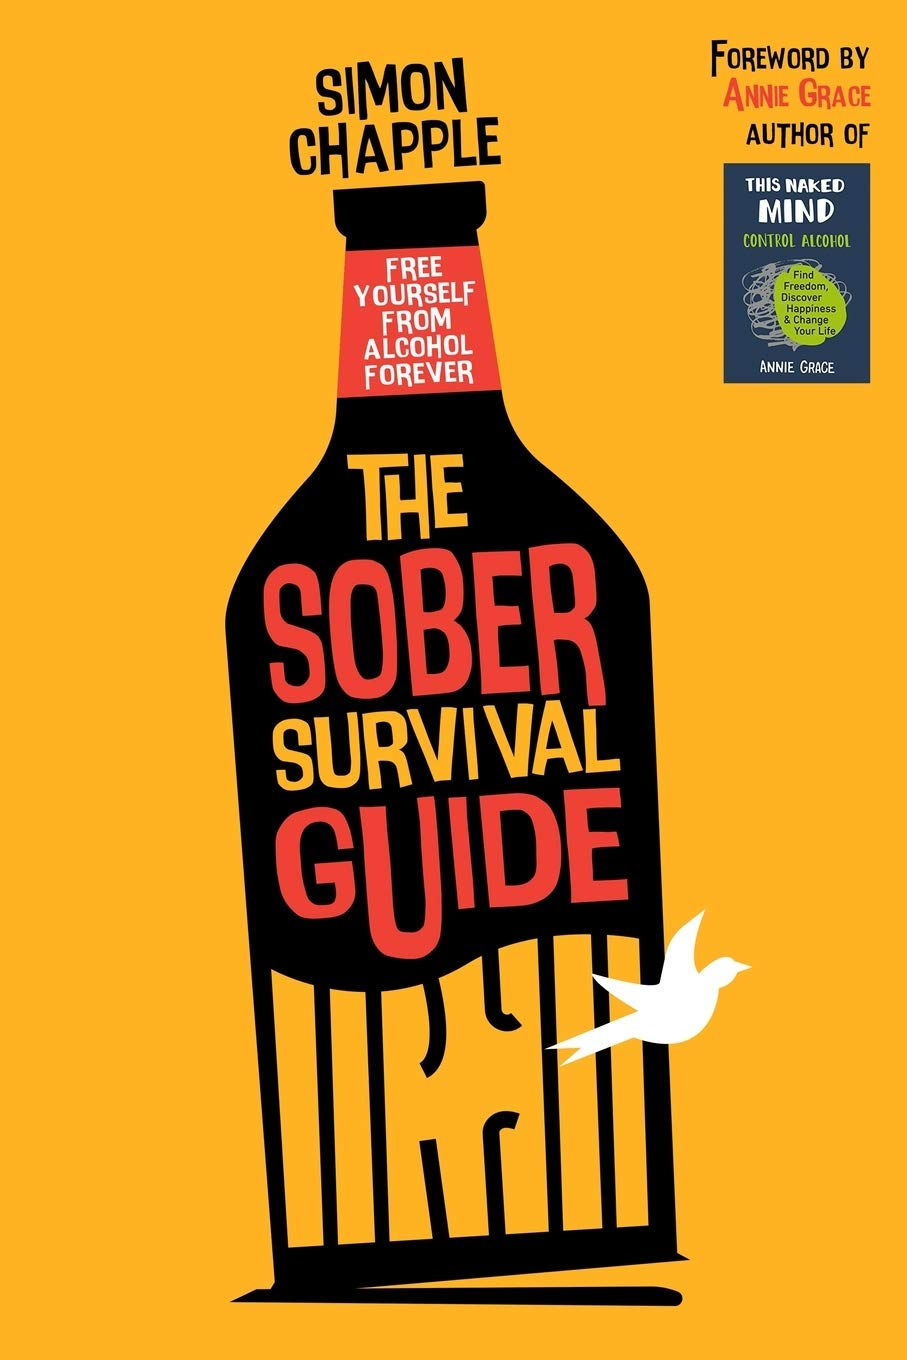 The Sober Survival Guide: How to Free Yourself from Alcohol.